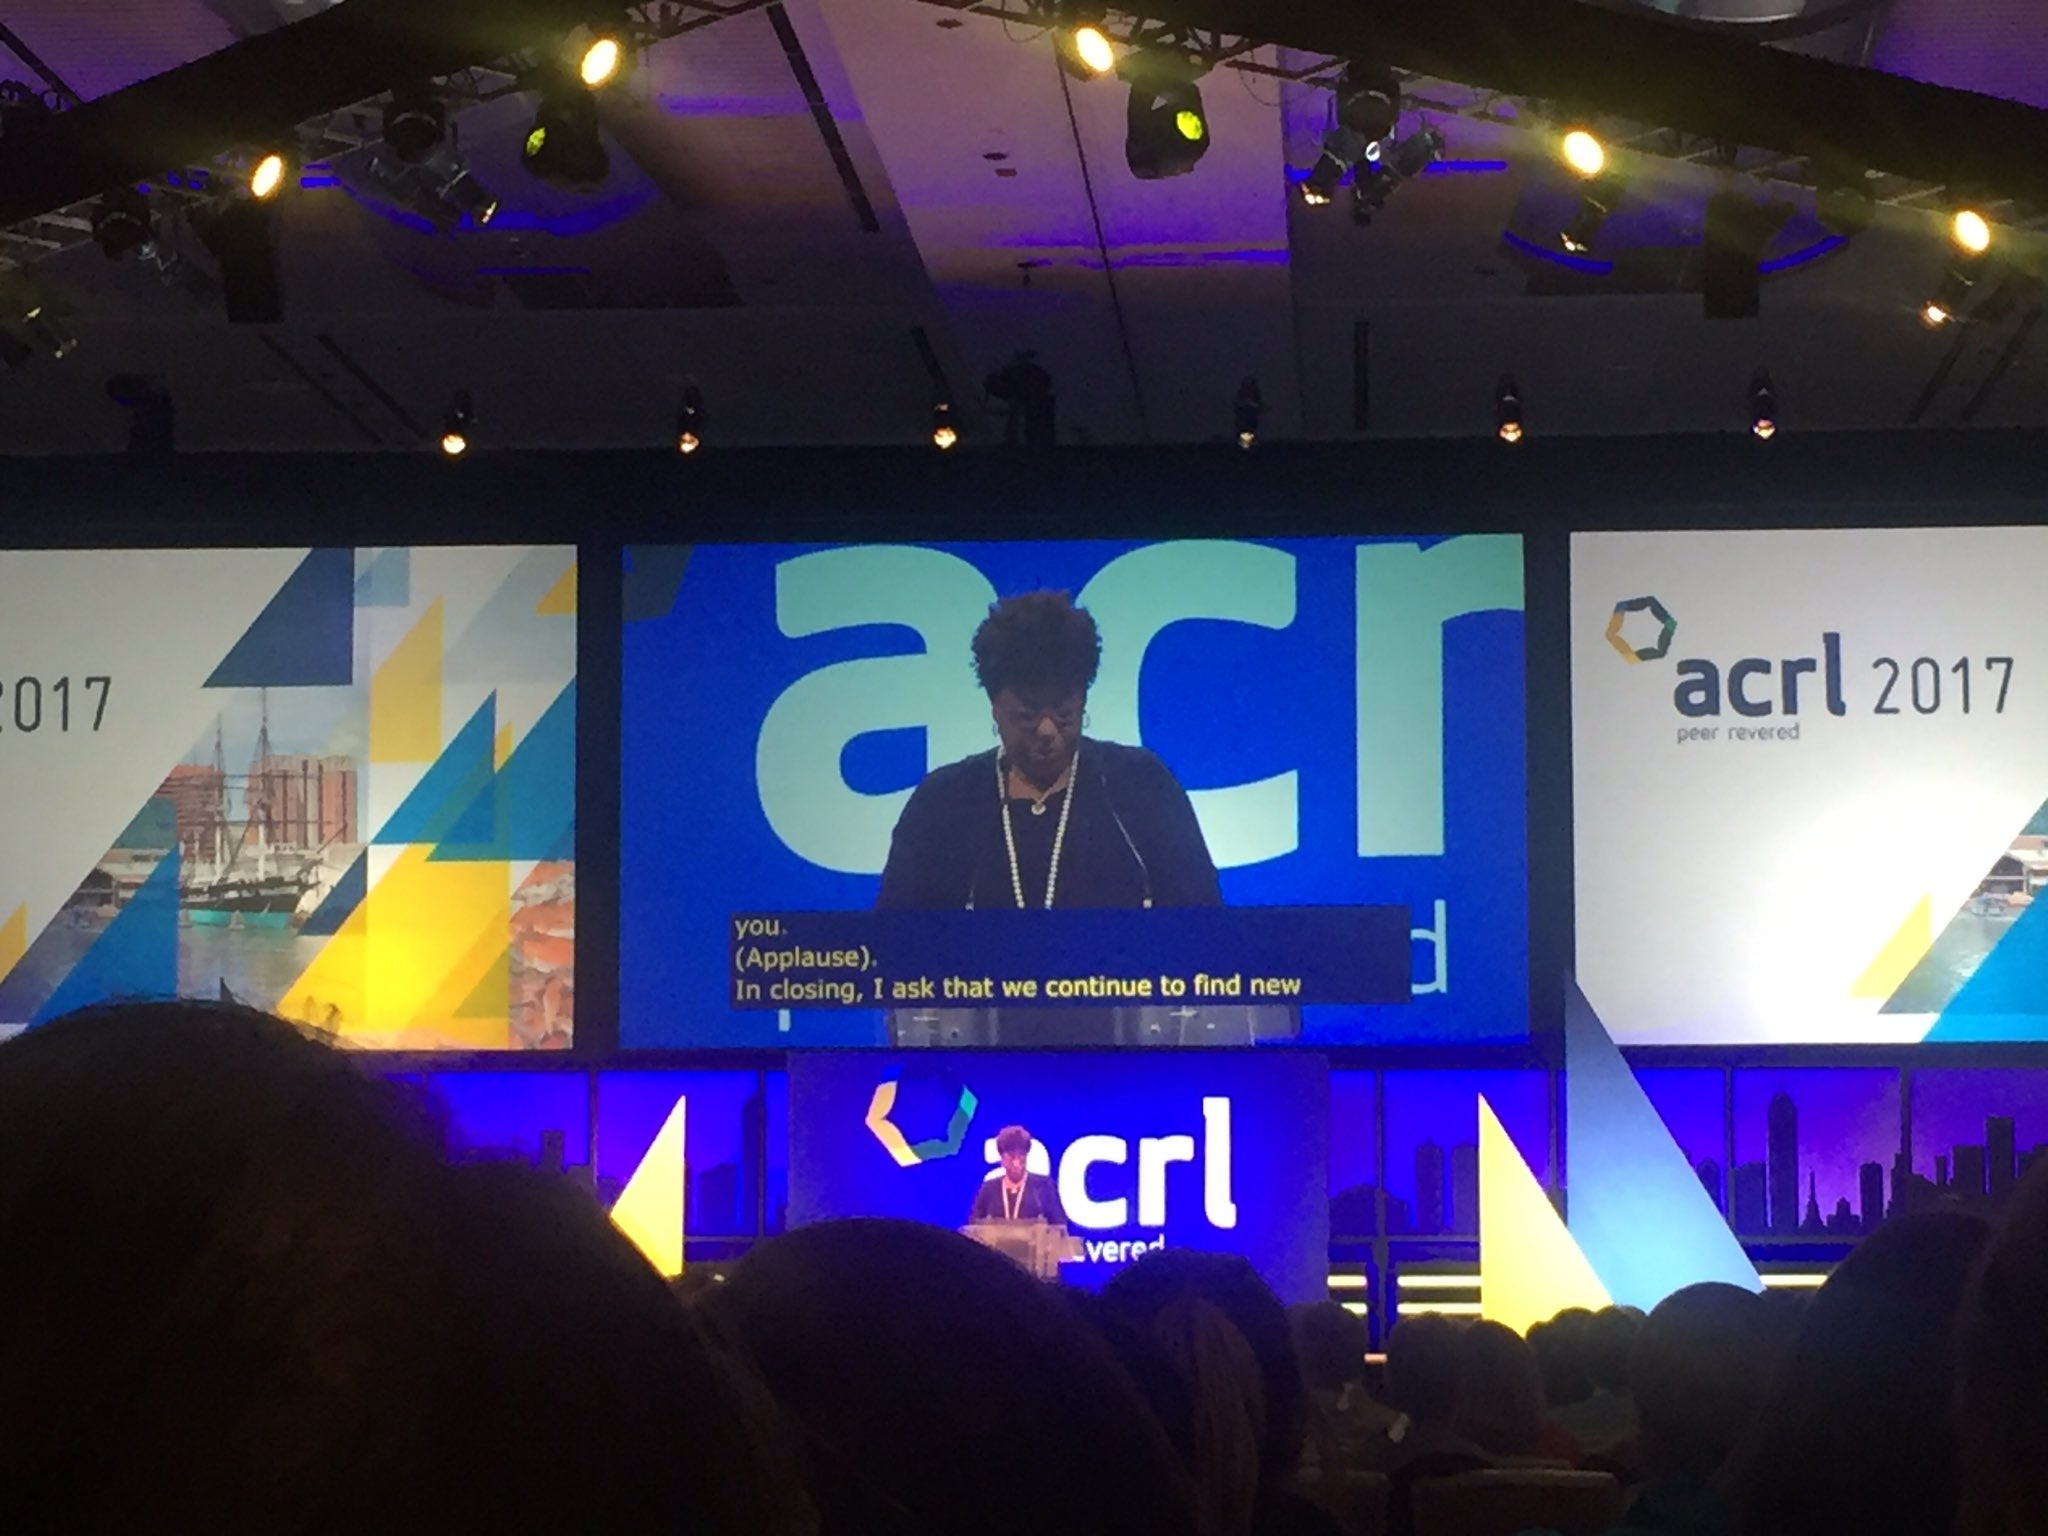 Great speech by Loretta Parham, Academic Librarian of the Year (and first time a librarian from an HBCU is recognized) #acrl2017 https://t.co/nDzUr2f6wG